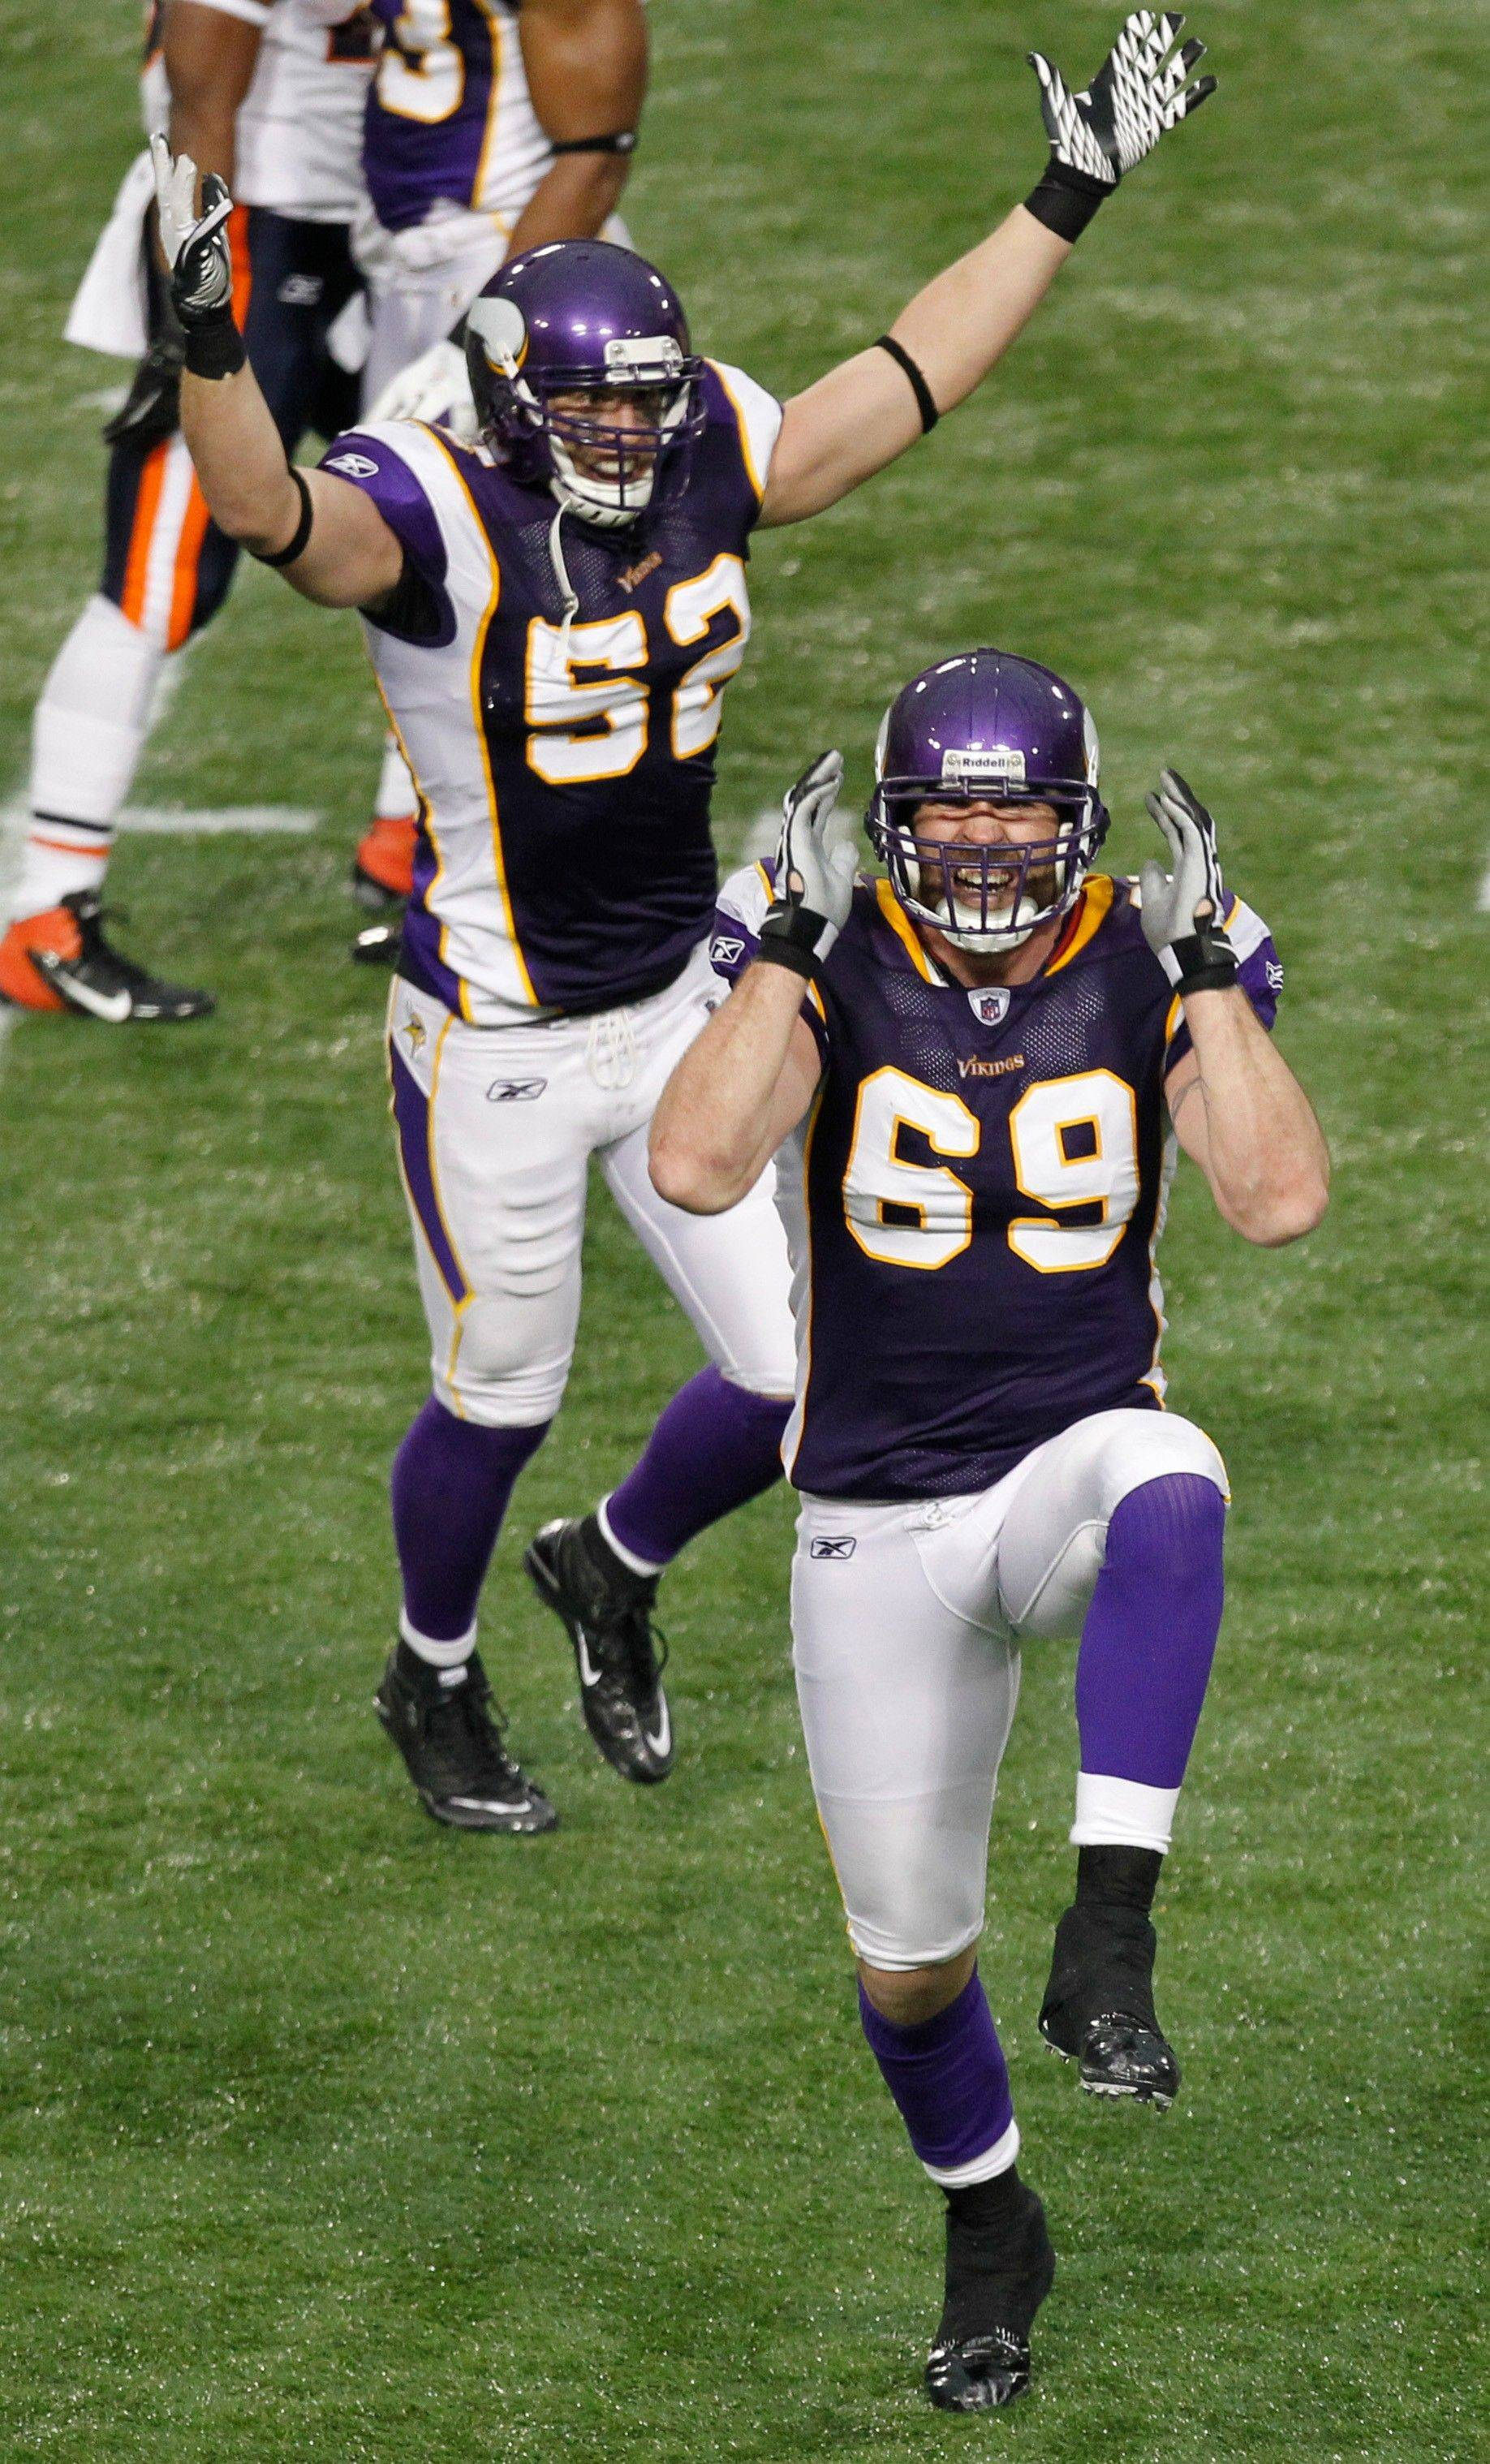 Minnesota Vikings defensive end Jared Allen celebrates after sacking Chicago Bears quarterback Josh McCown in the second half. Allen broke the team's single-season sack record of 21.5 on the play, set by Chris Doleman in 1989. At left is Vikings outside linebacker Chad Greenway.